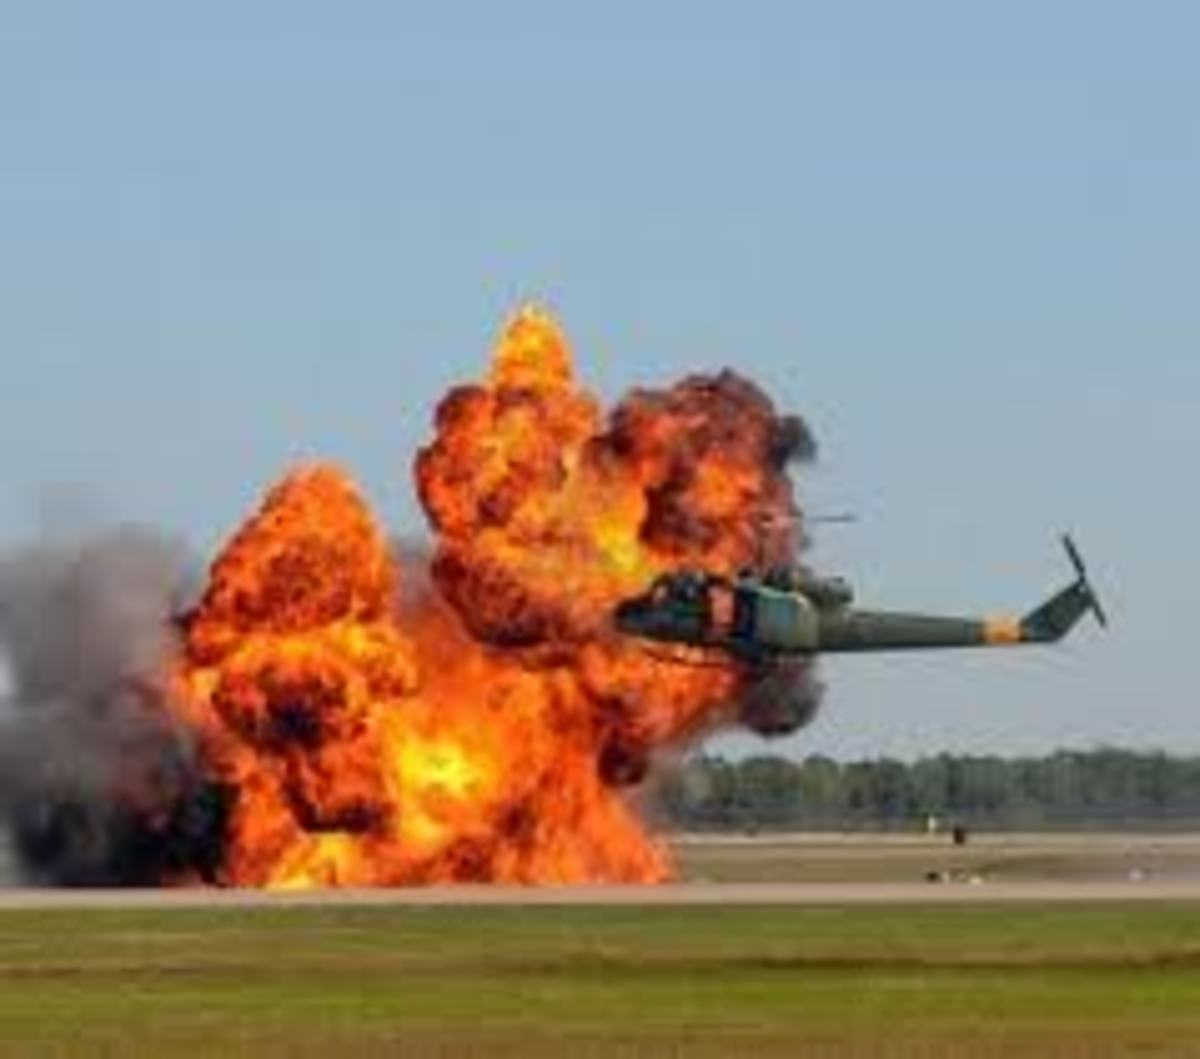 Helicopter hovering near a giant explosion